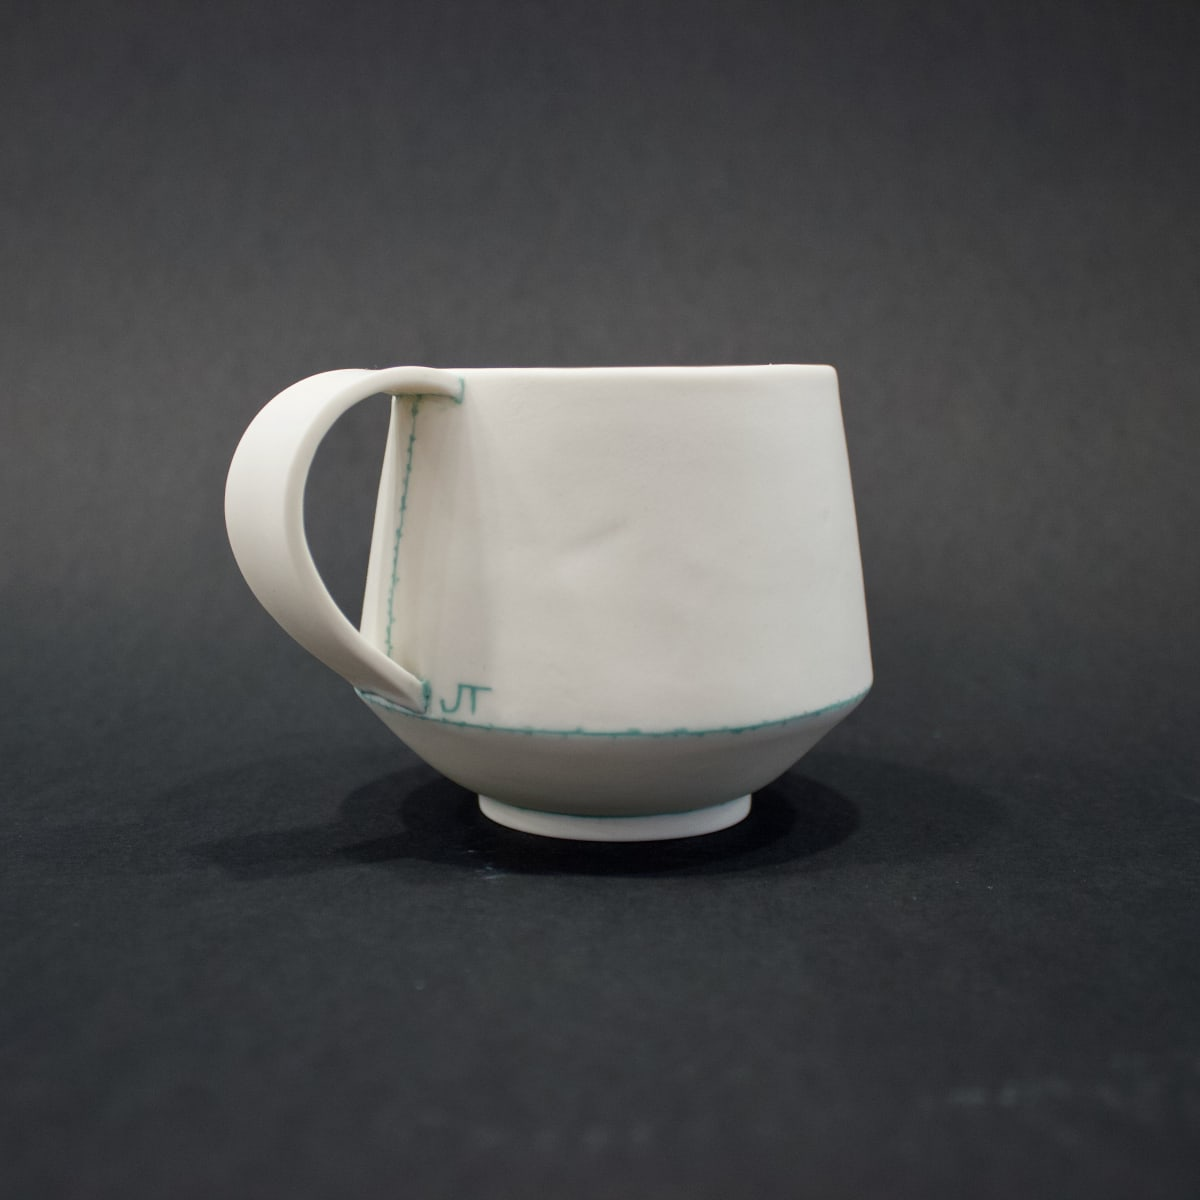 Jessica Thorn Breakfast Cup, Mint, 2019 Porcelain 8 x 12 x 9 cm 3 1/8 x 4 3/4 x 3 1/2 in